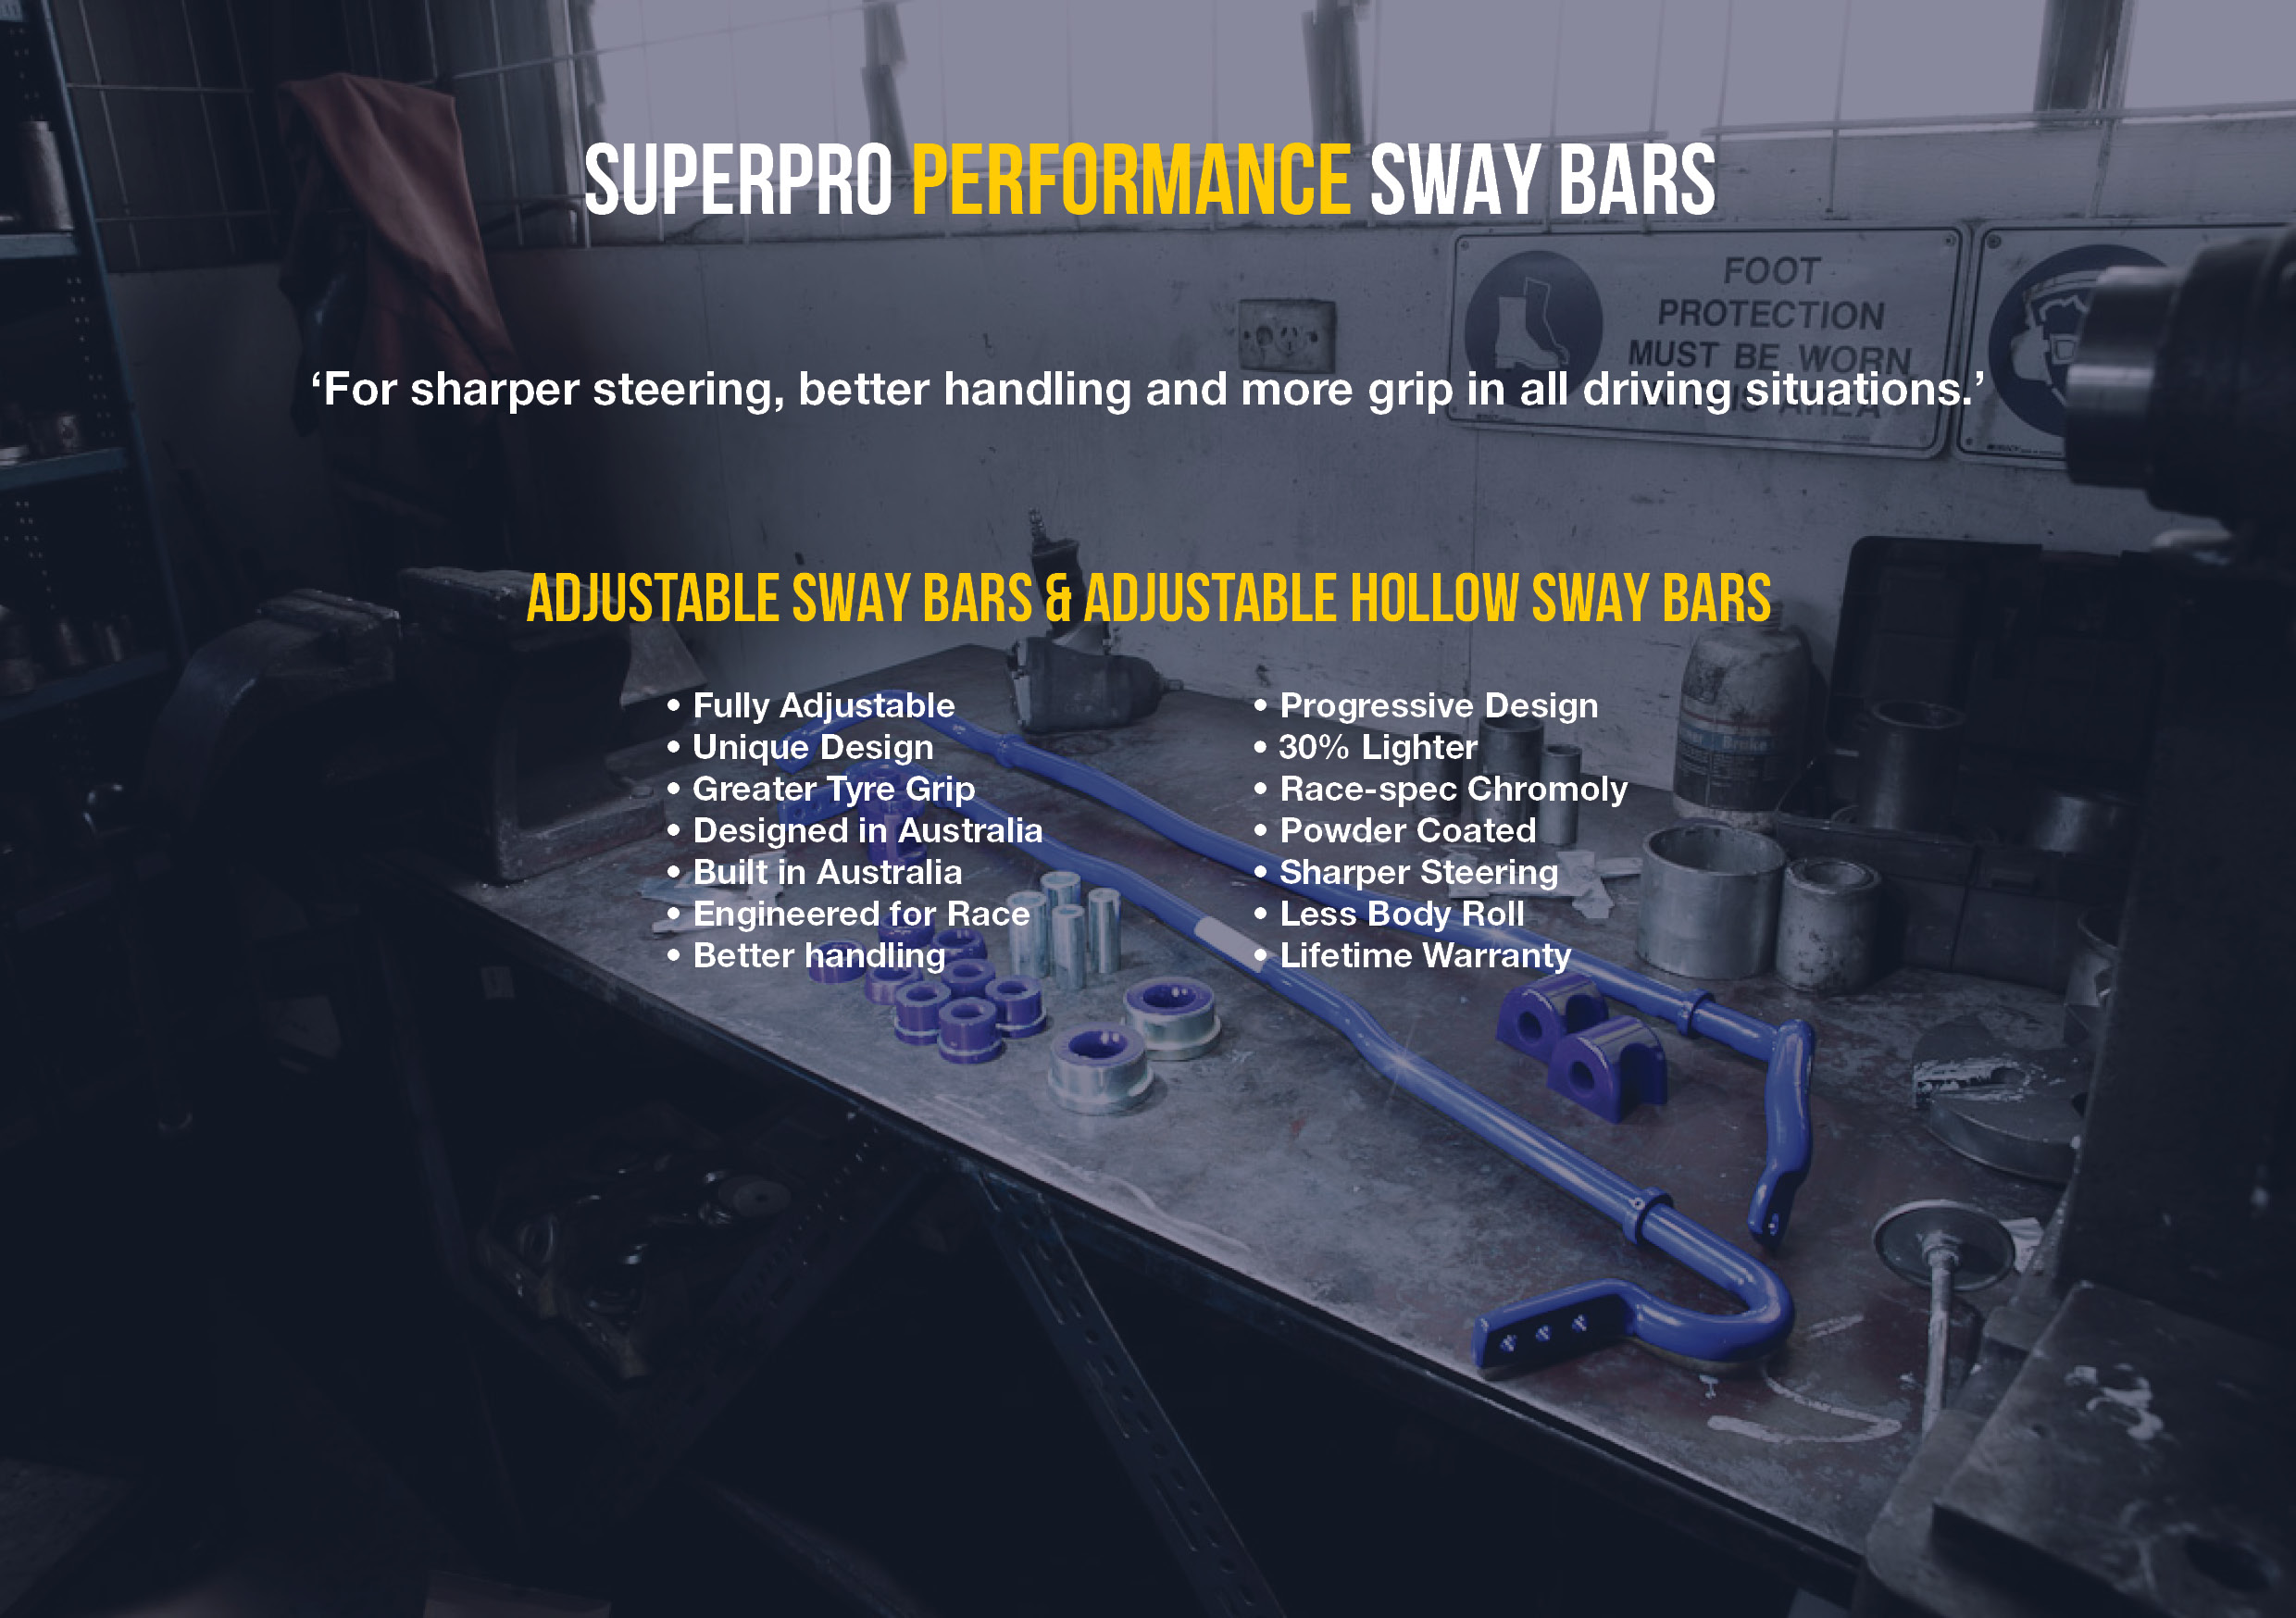 SuperPro Performance Sway Bars